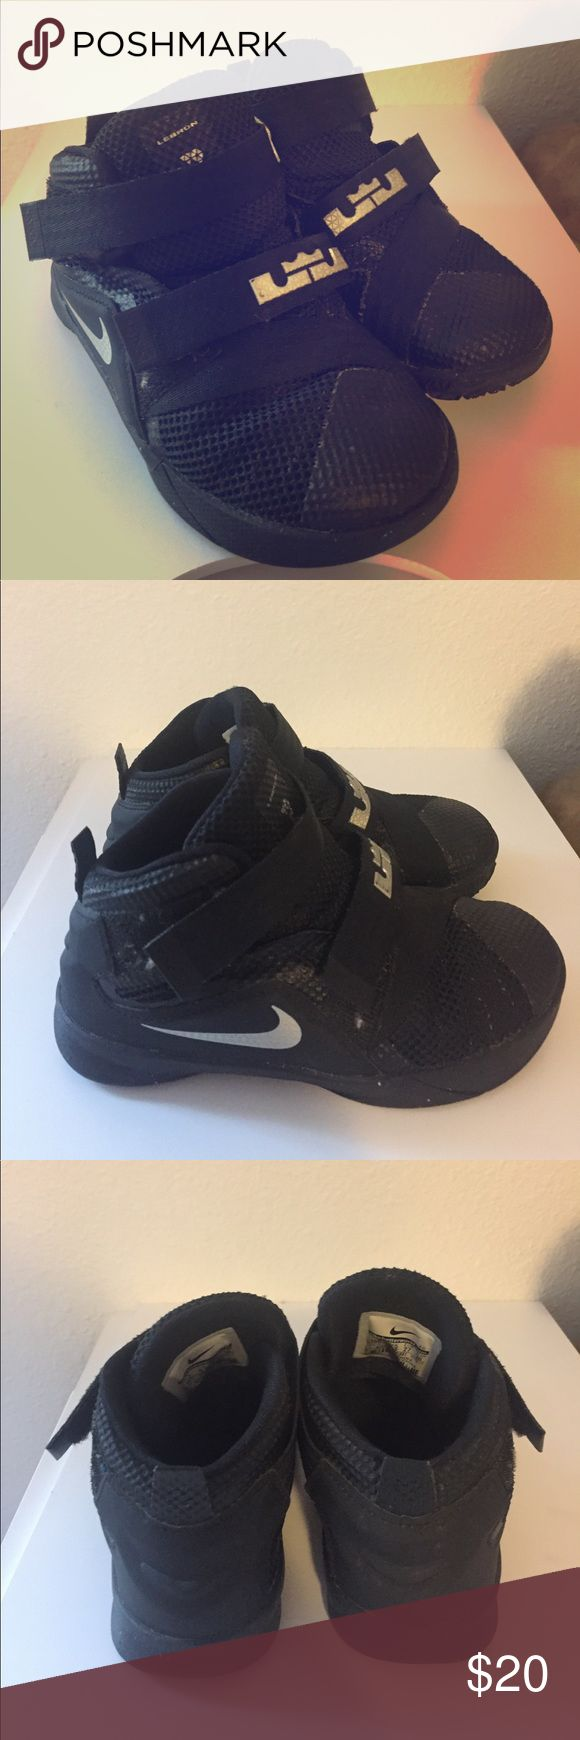 Boys Nike shoes size 10 Boys size 10 Nikes shoes used a few times Nike Shoes Sneakers